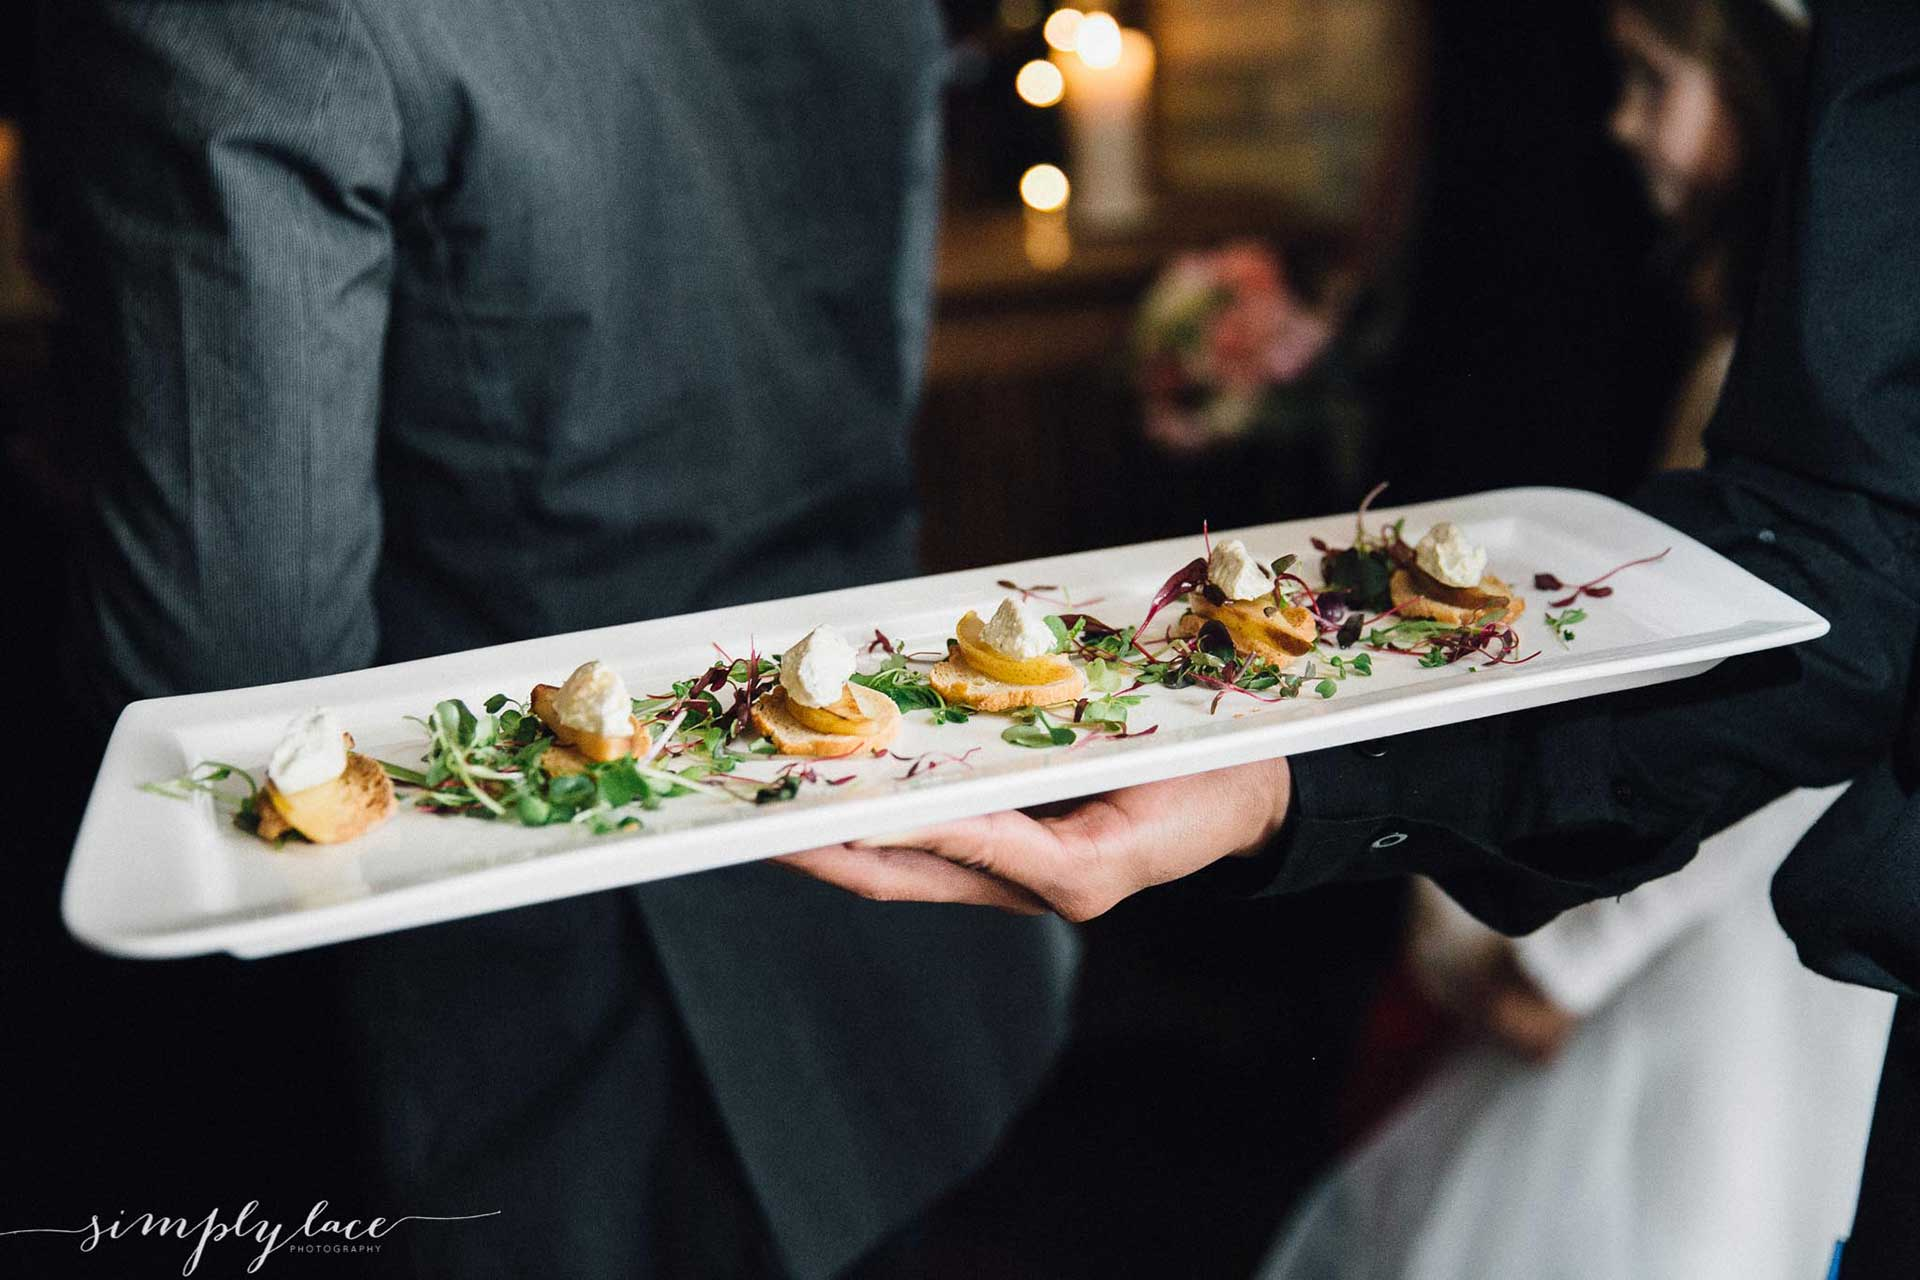 Wedding Catering Appetizers Image In Toronto, ON - The Fifth Events